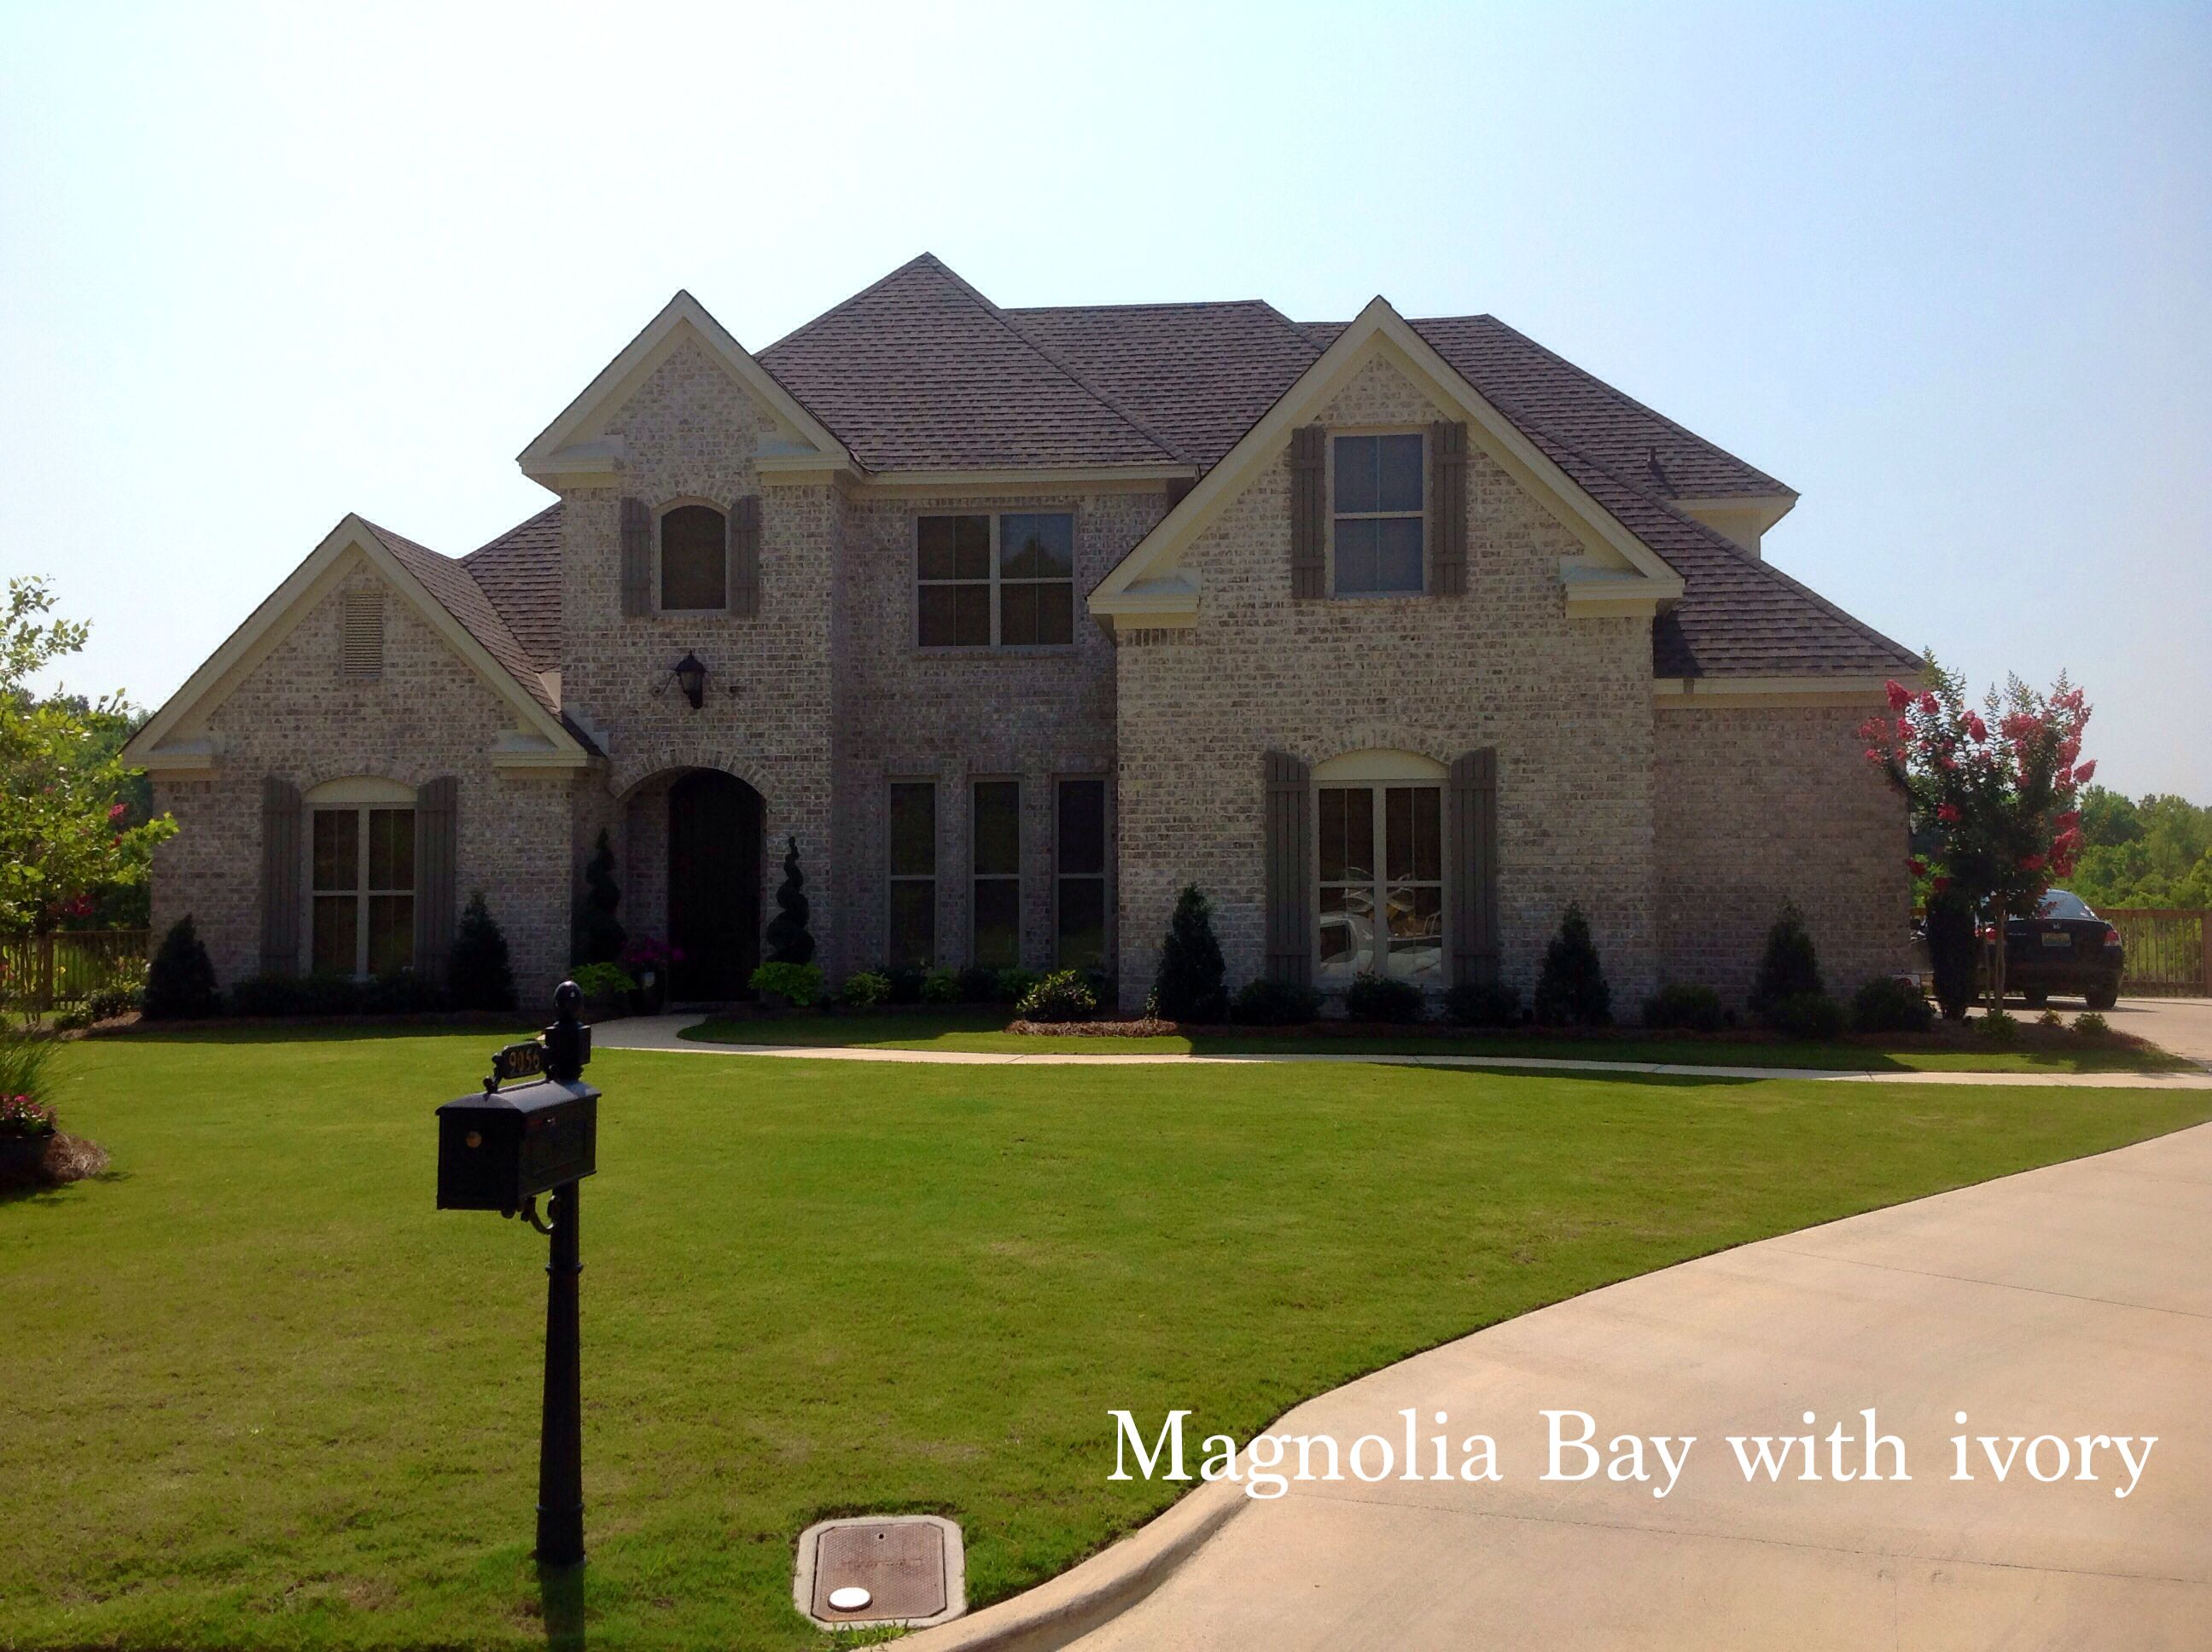 Magnolia bay with ivory from south alabama brick company for Brick selection for houses